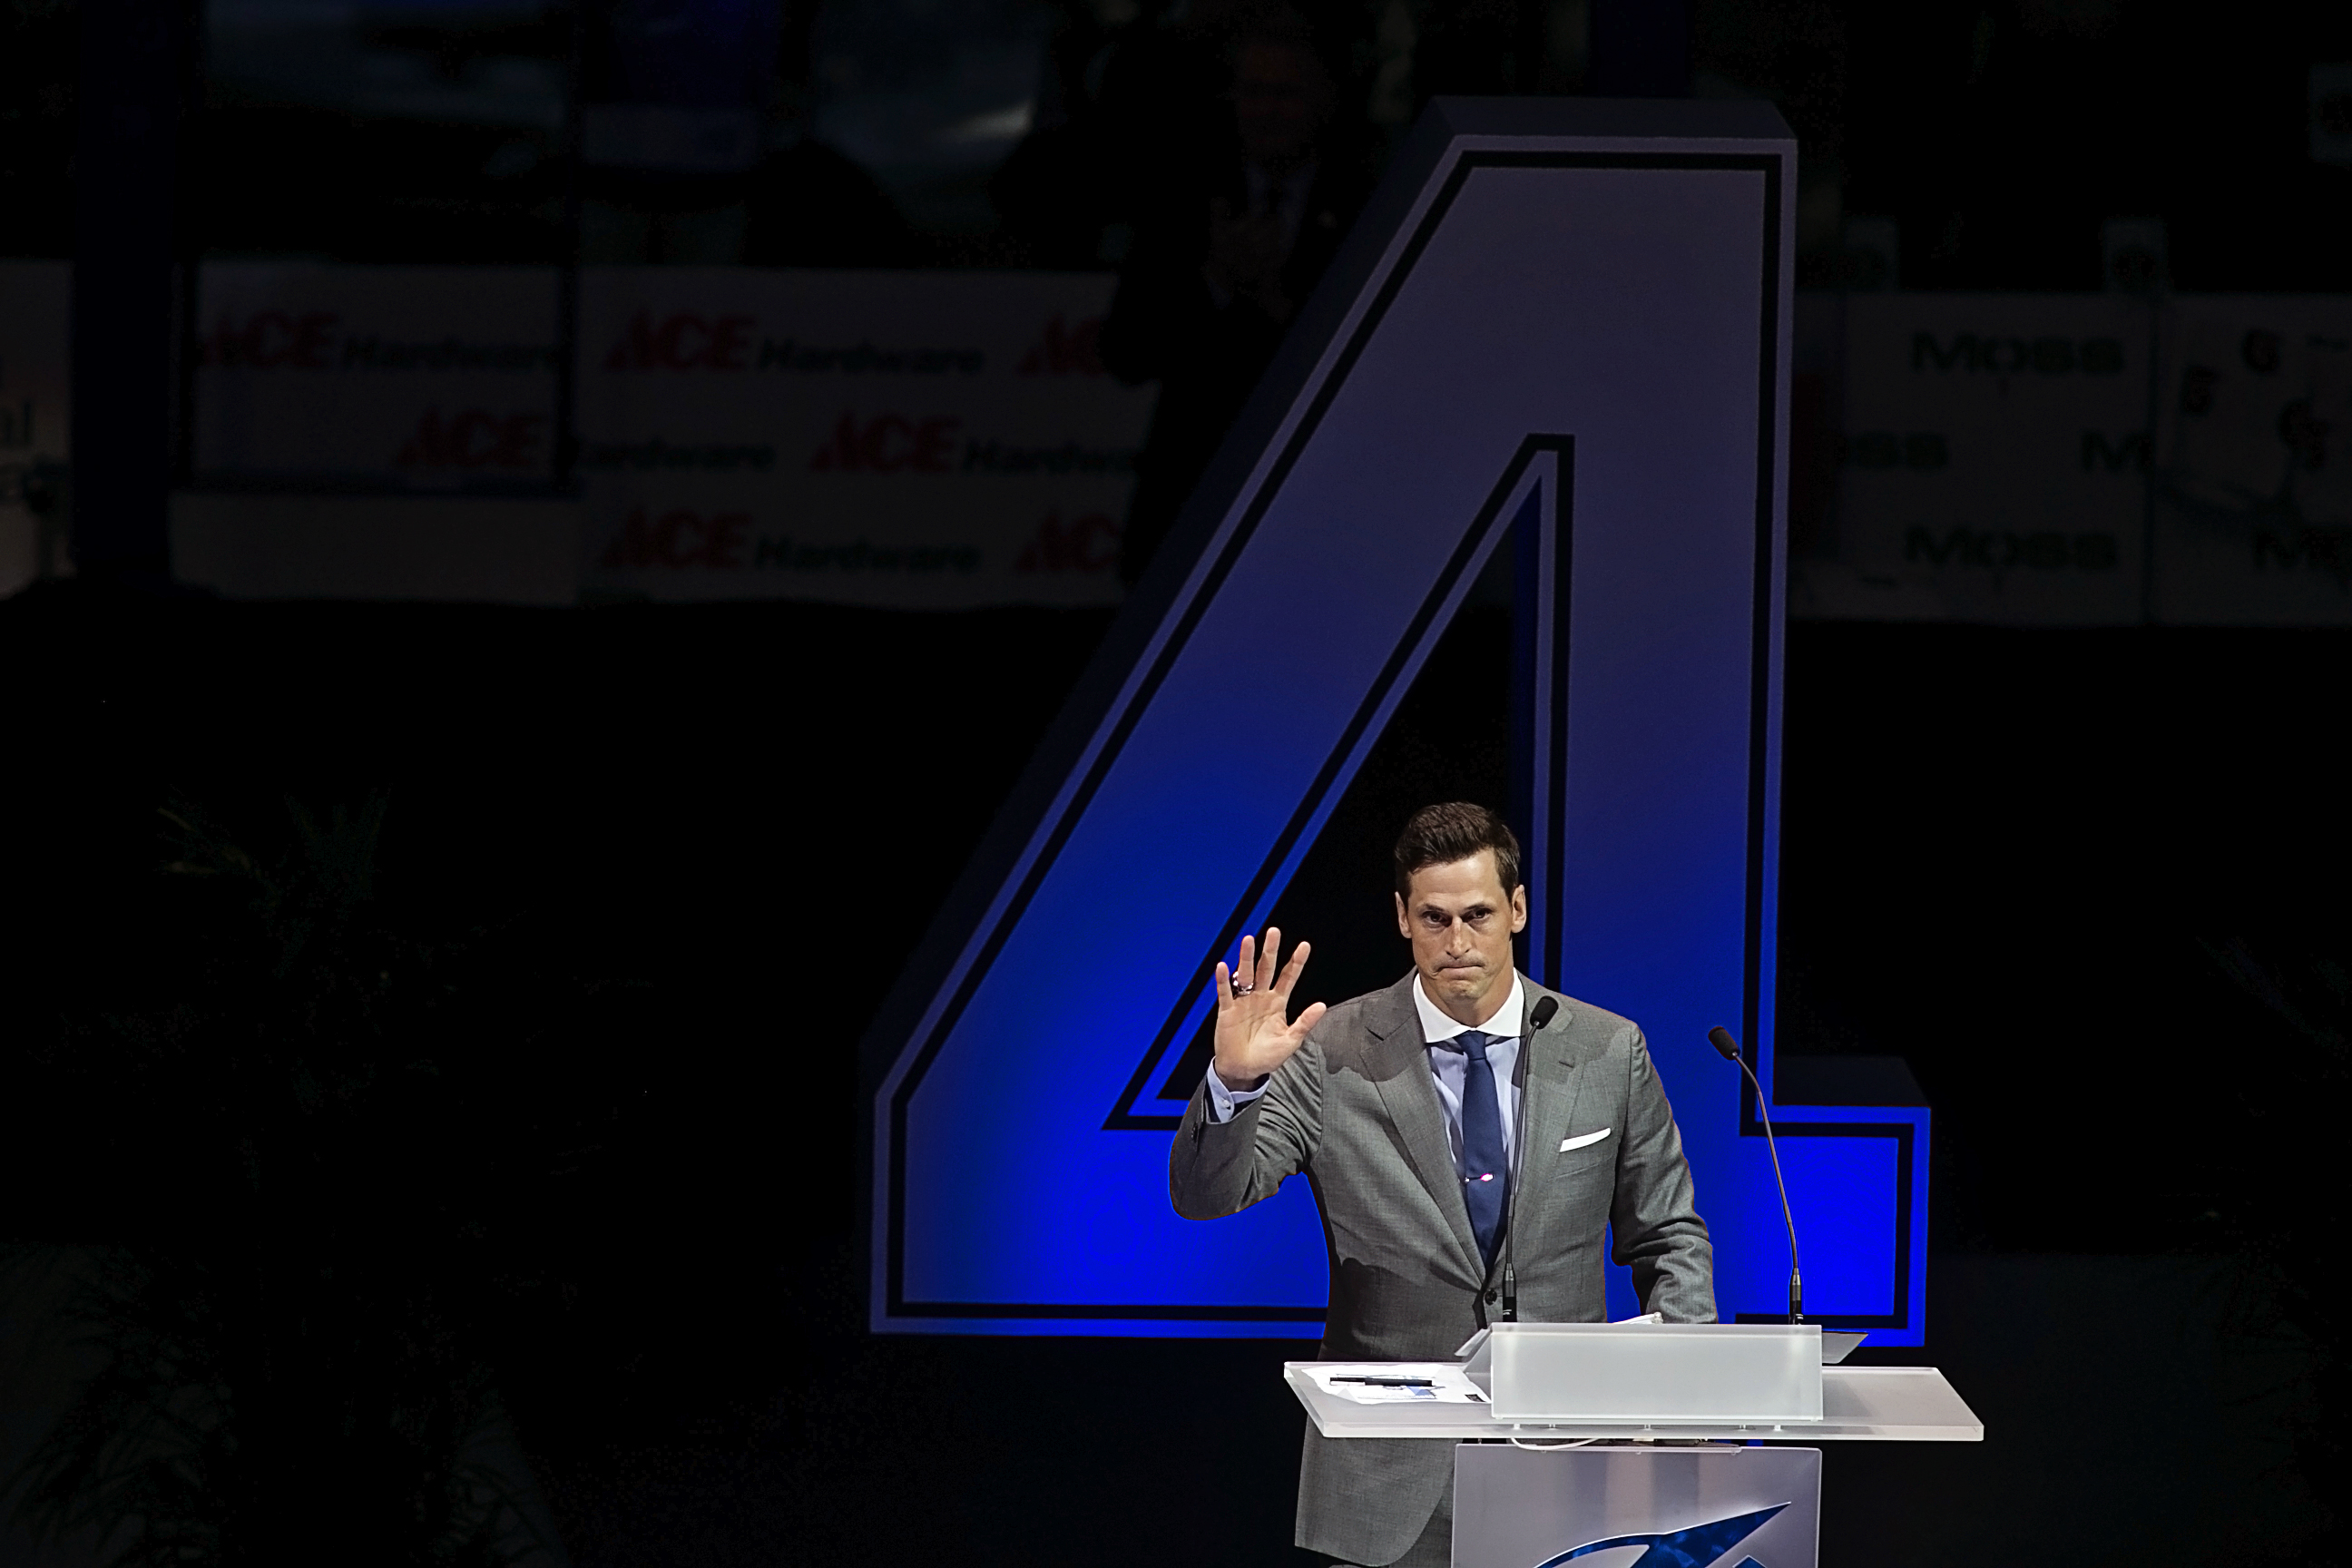 The Lightning retired Vinny Lecavalier's number./CARMEN MANDATO